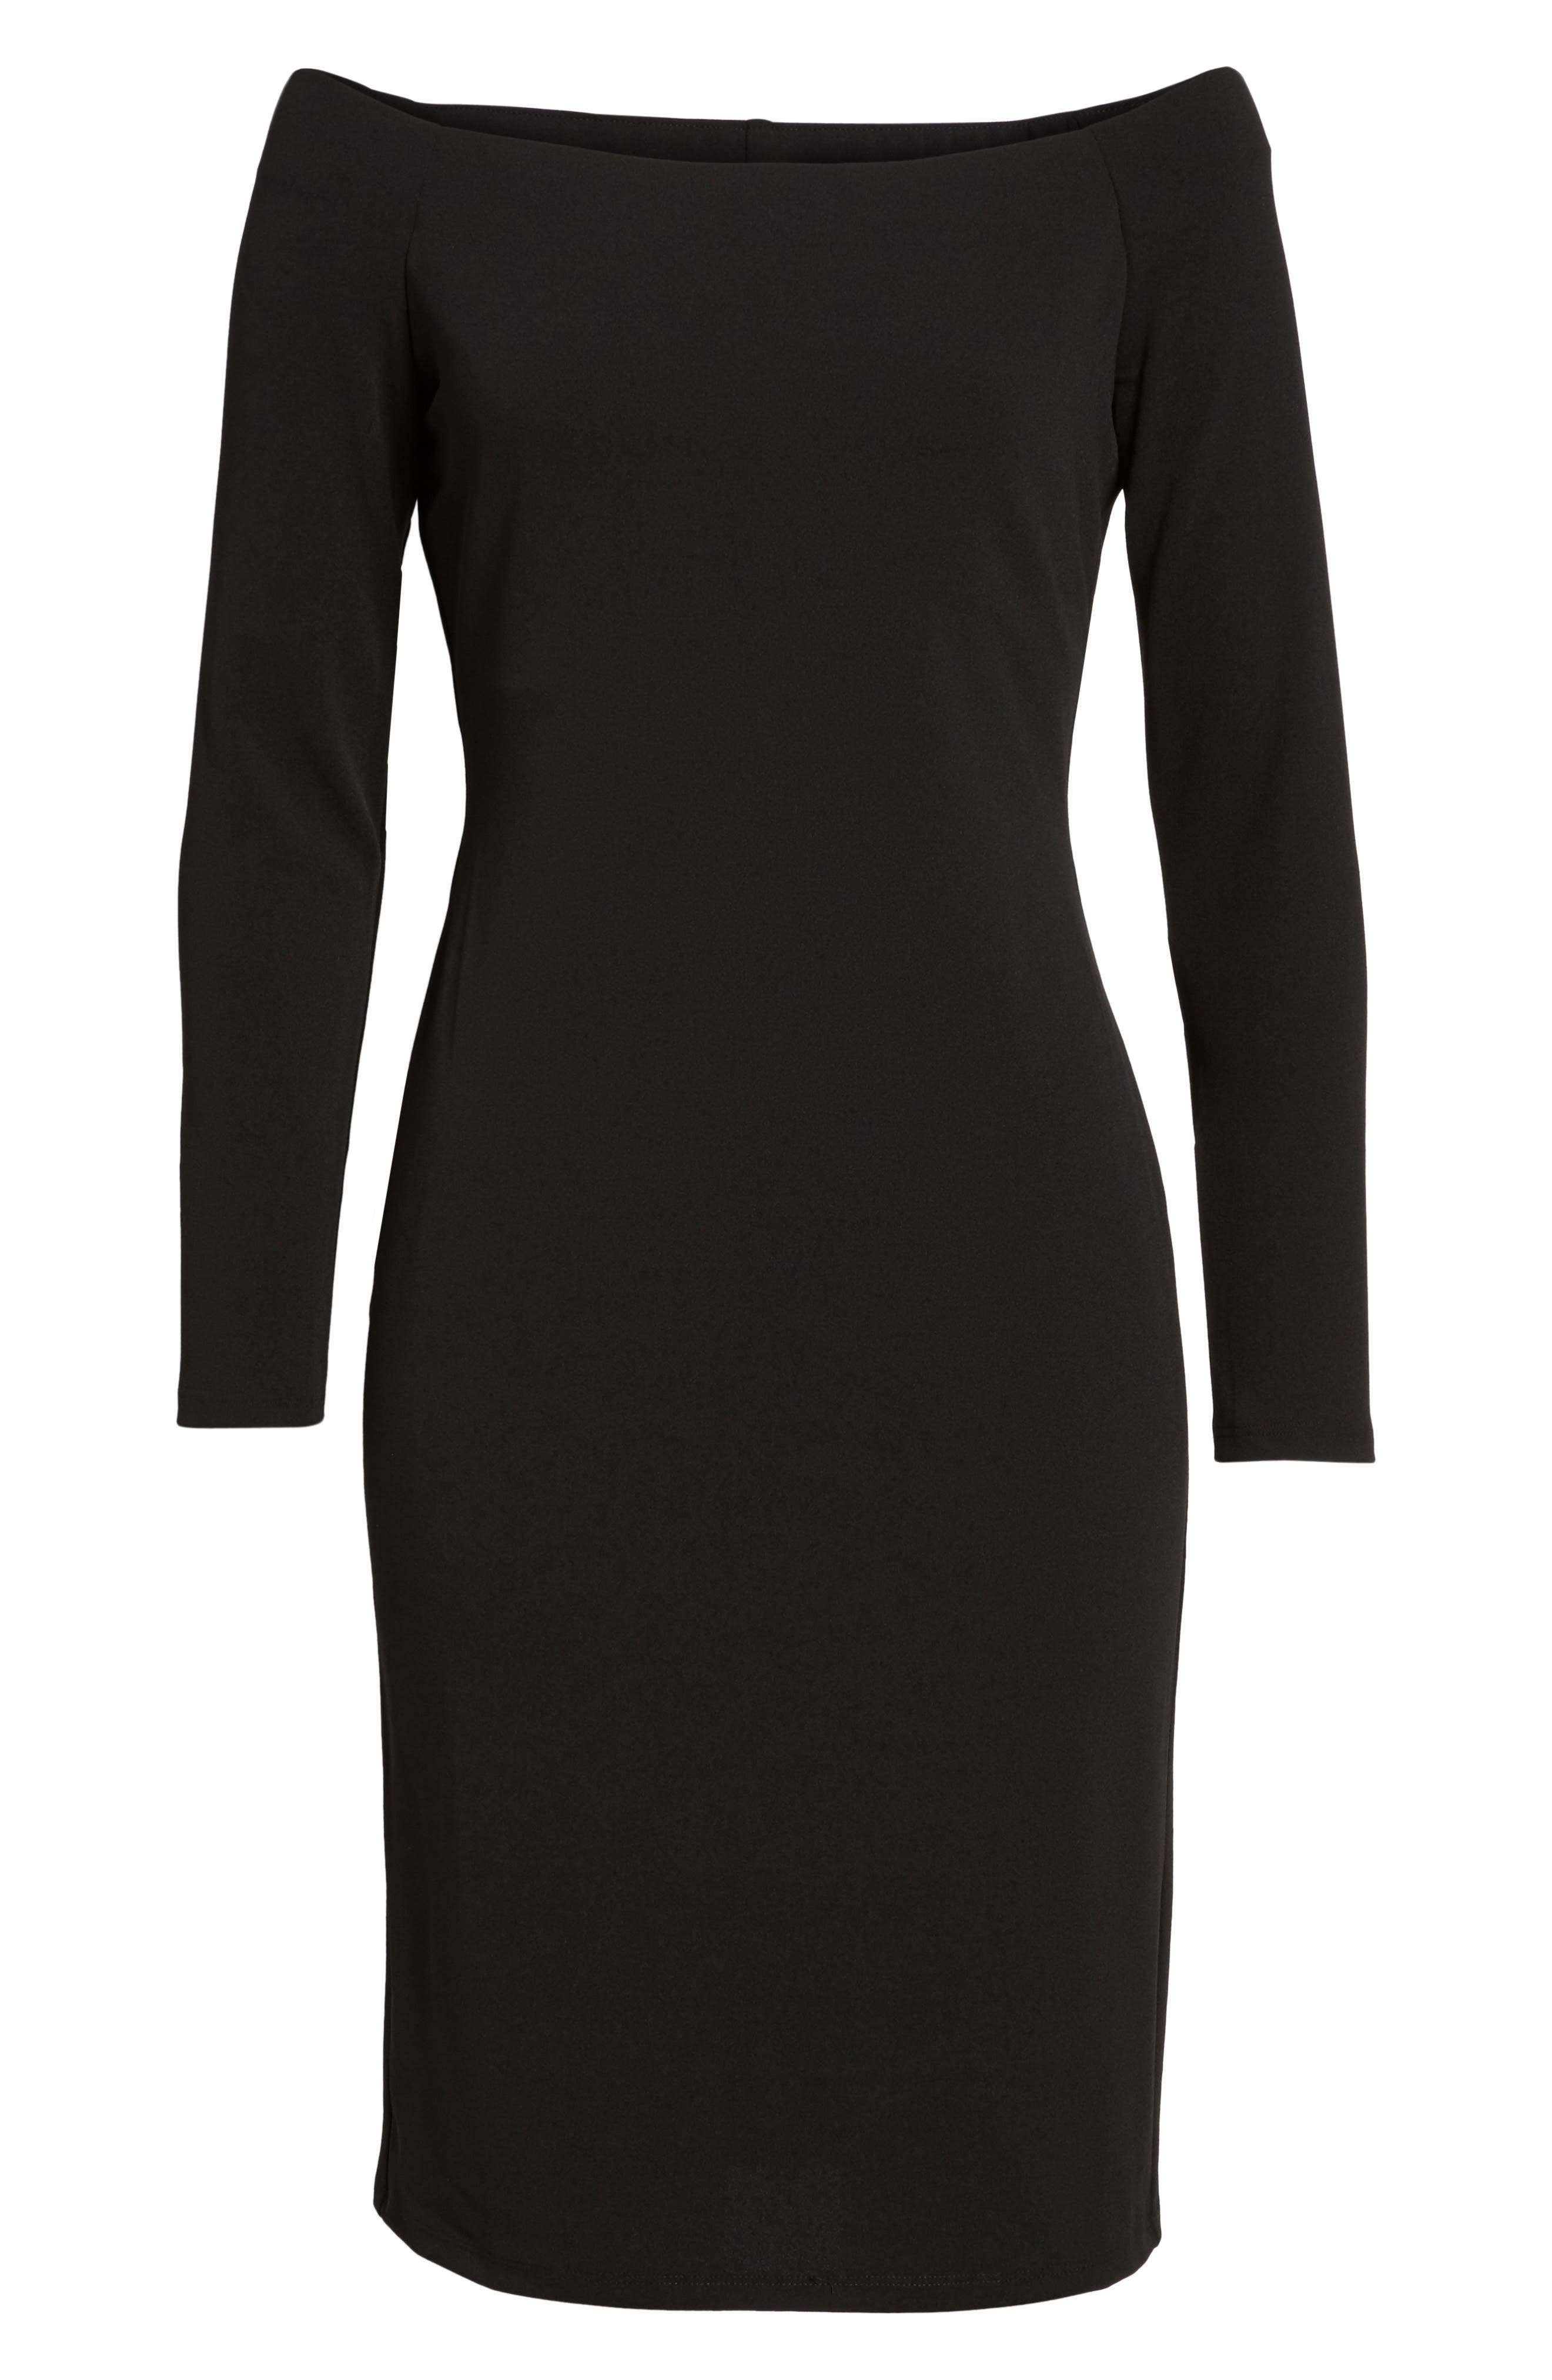 Alternate Image 1 Selected - Eliza J Off the Shoulder Scuba Sheath Dress (Regular & Petite)